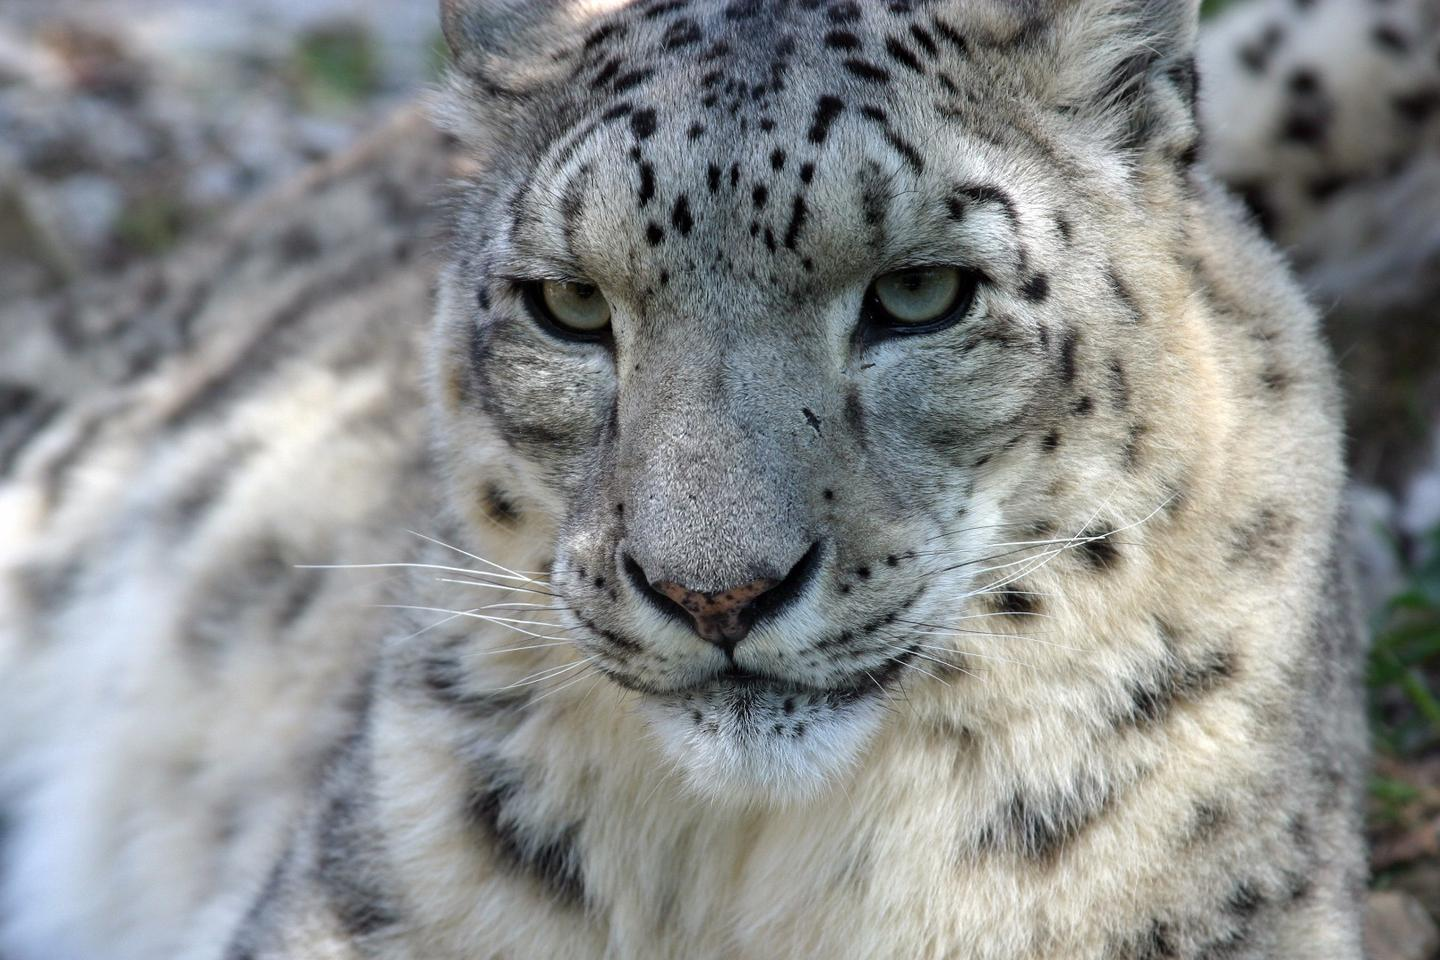 Studying snow leopard populations in the past has been problematic